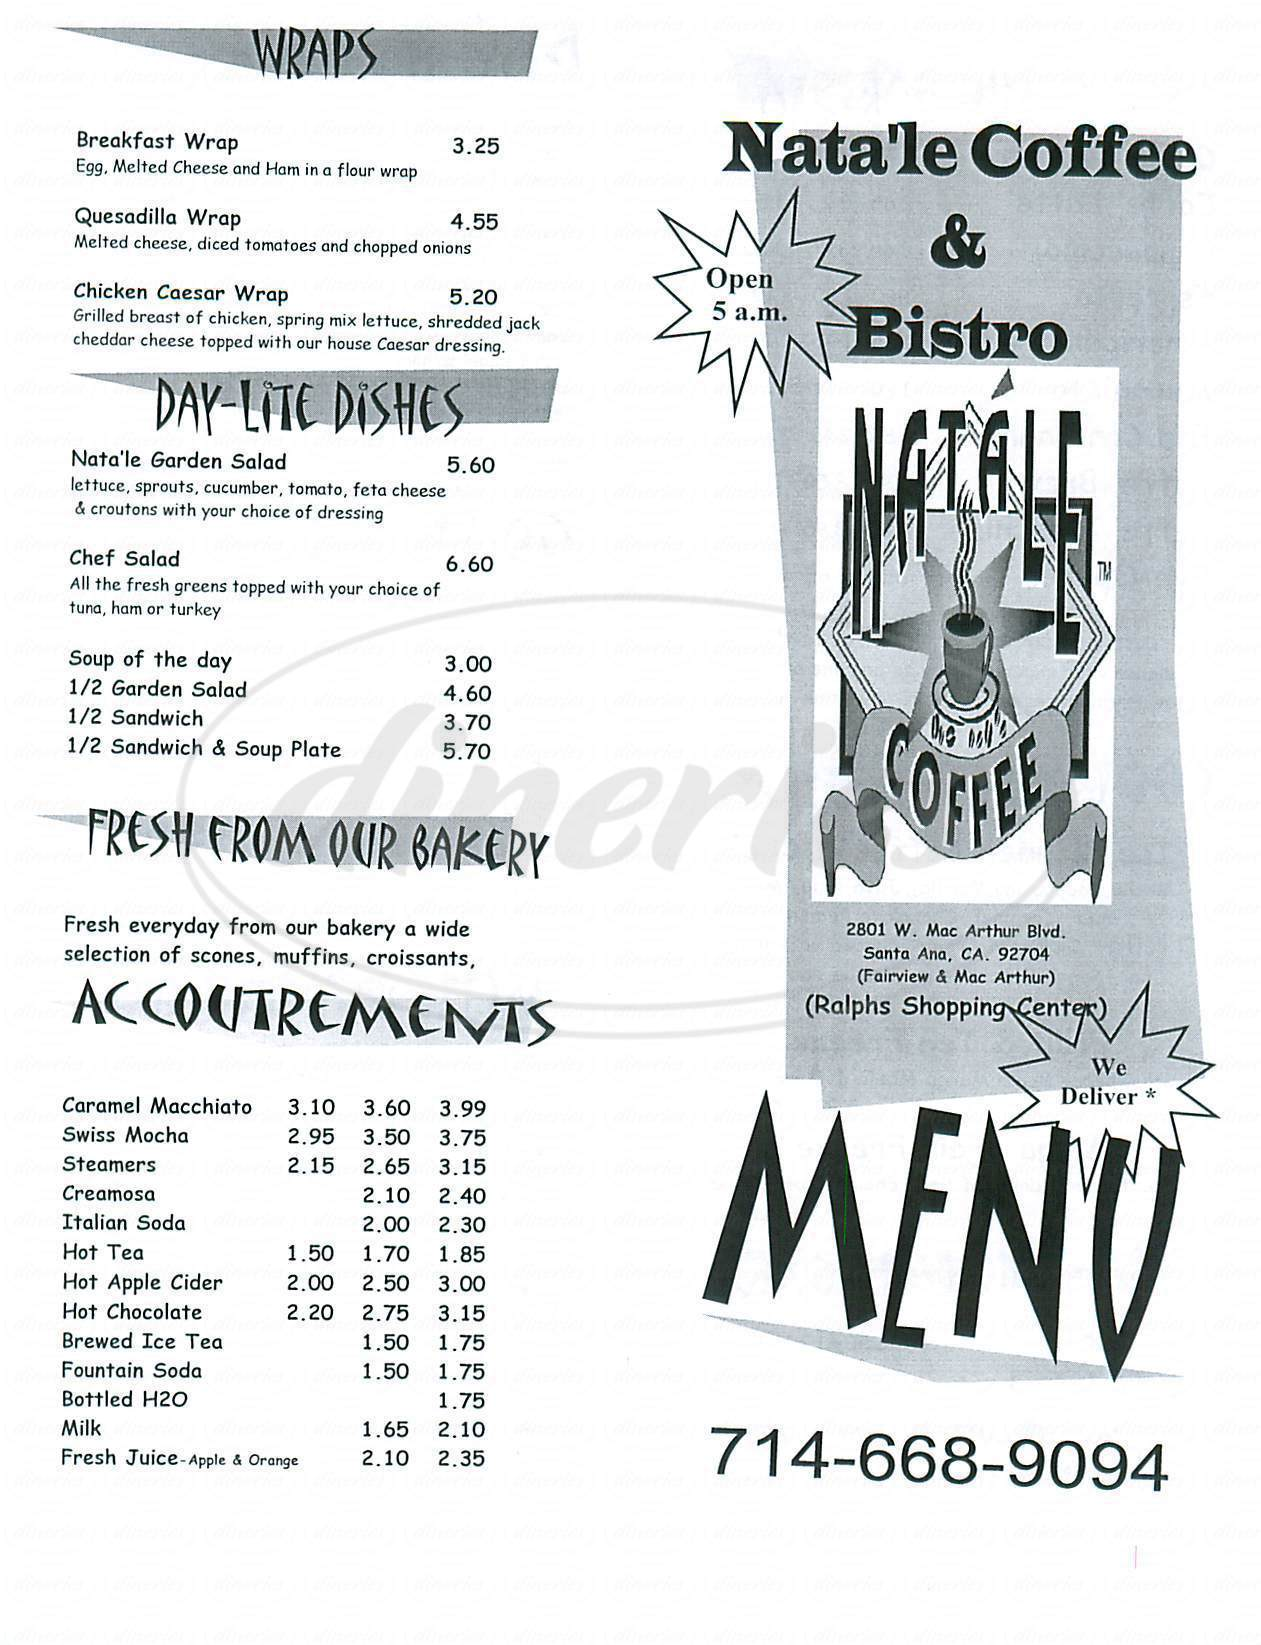 menu for Natale Coffee